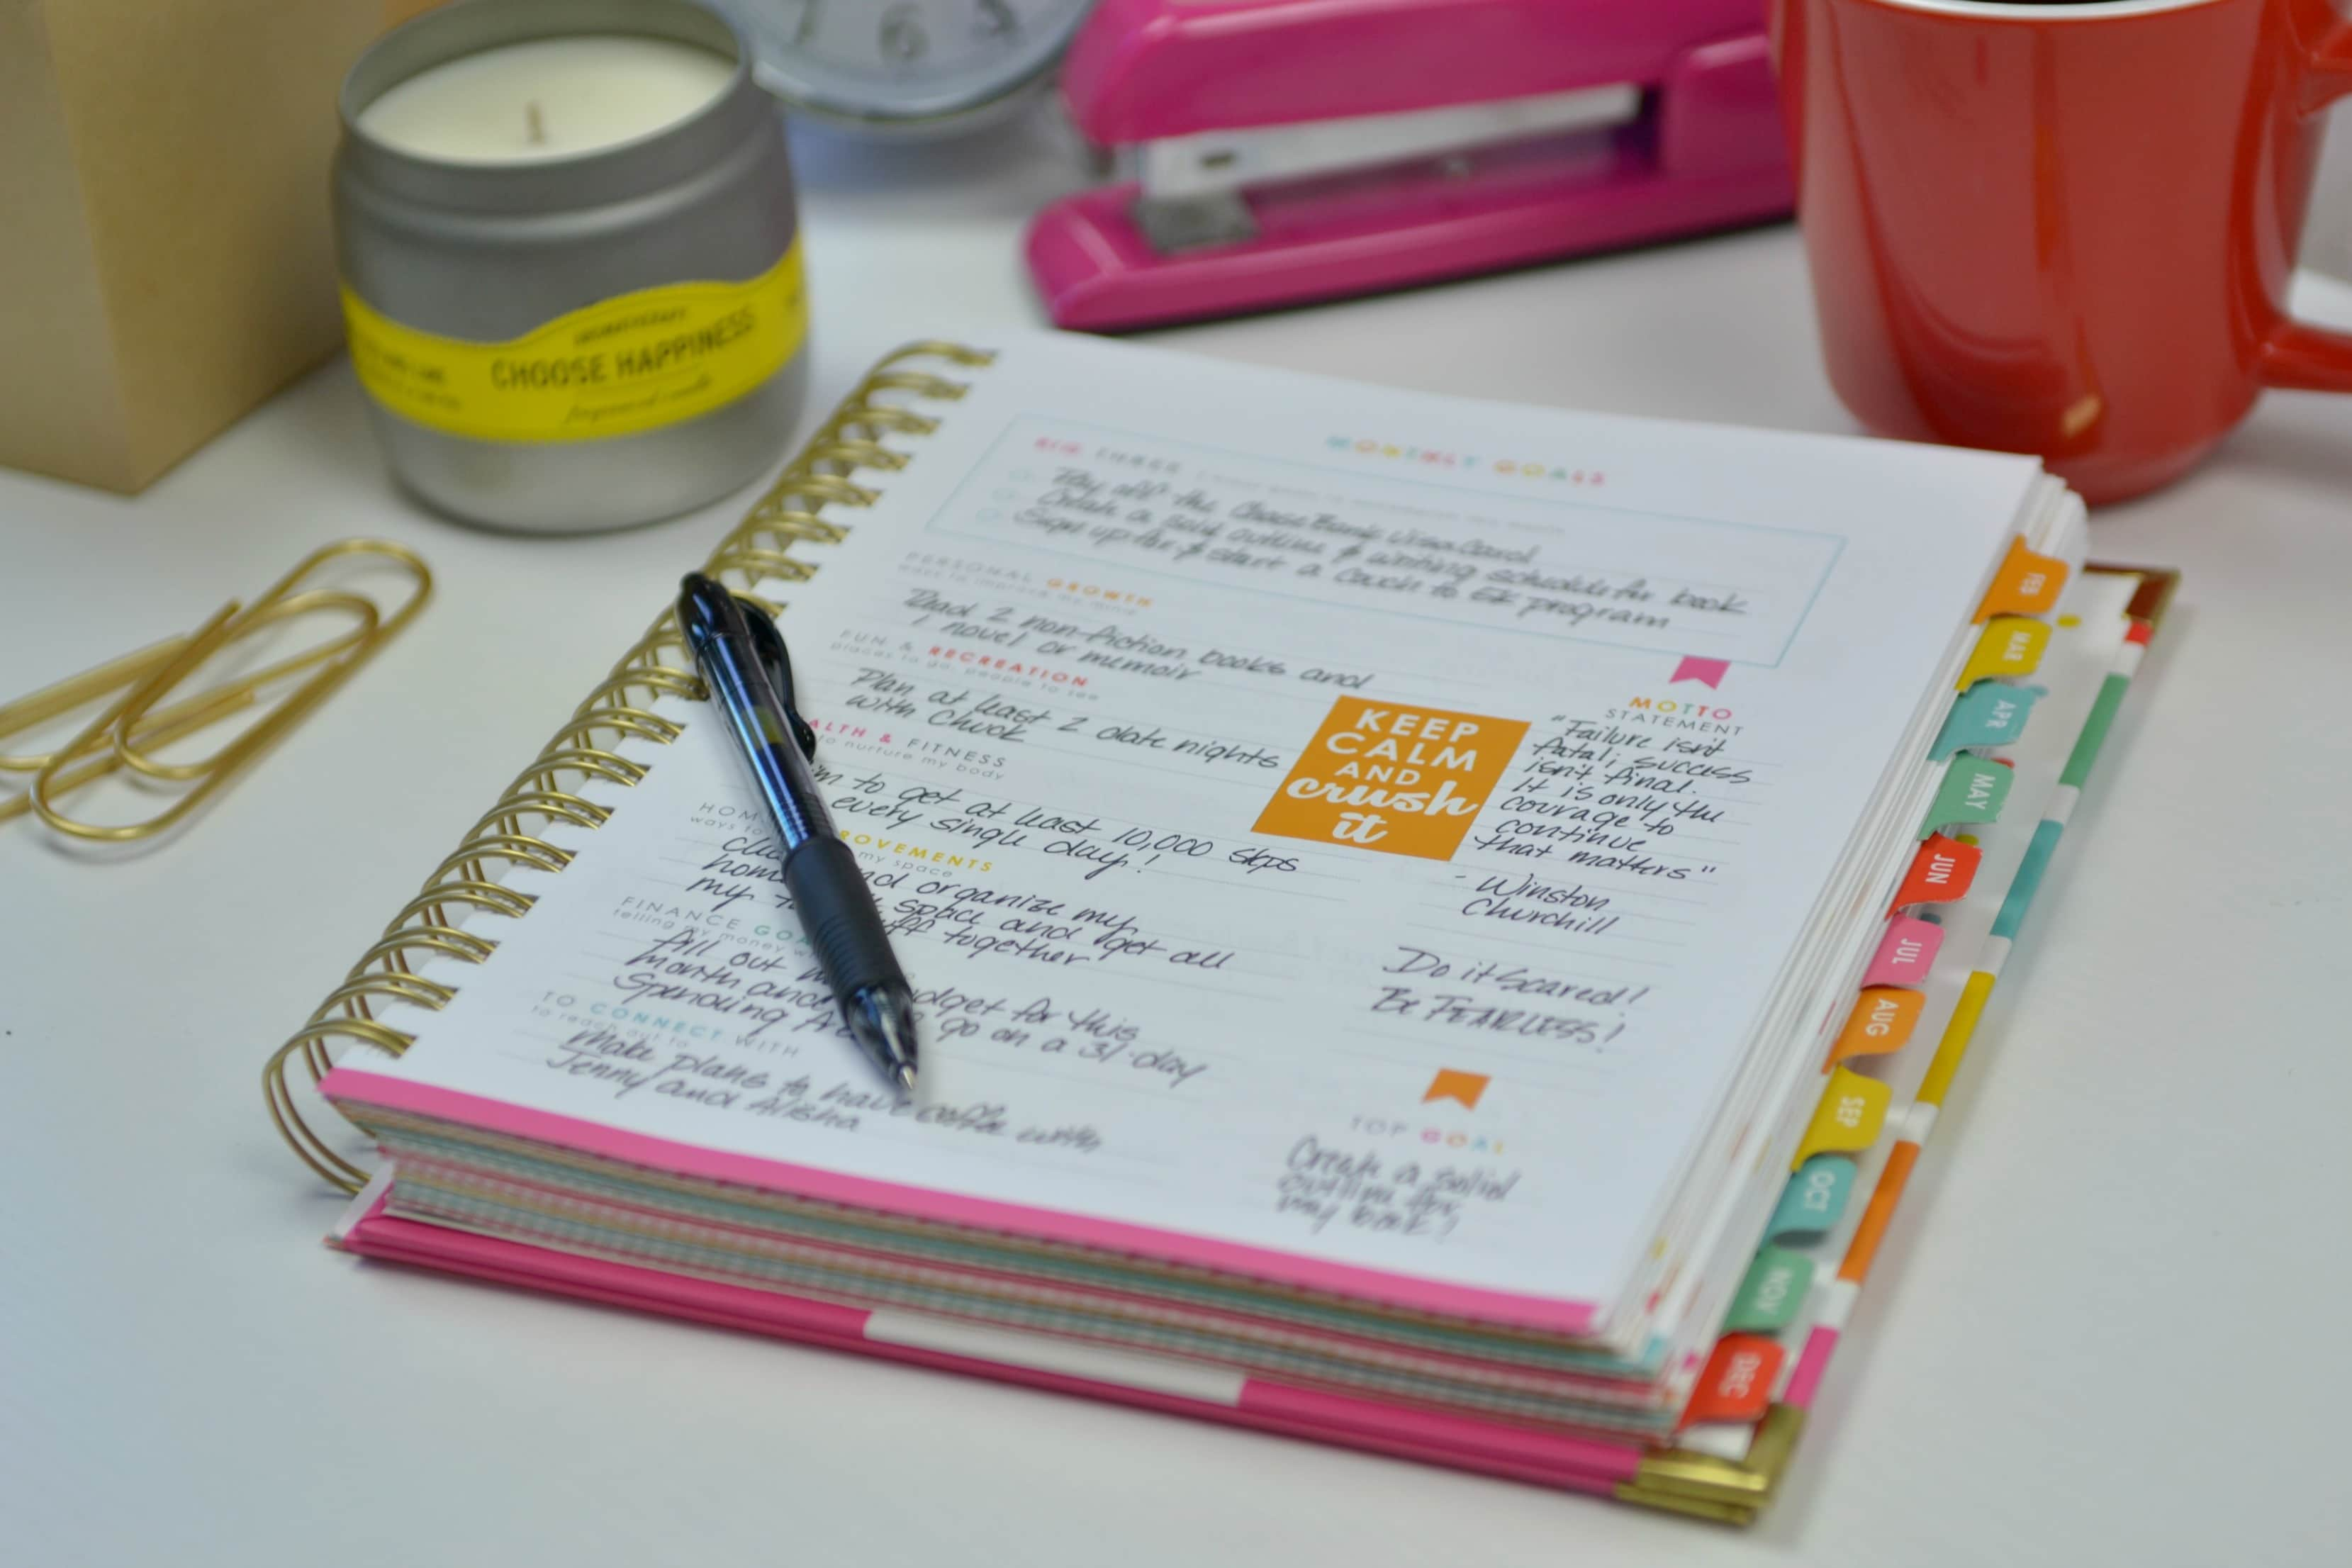 Using a personal planner is a great way to organize your life.